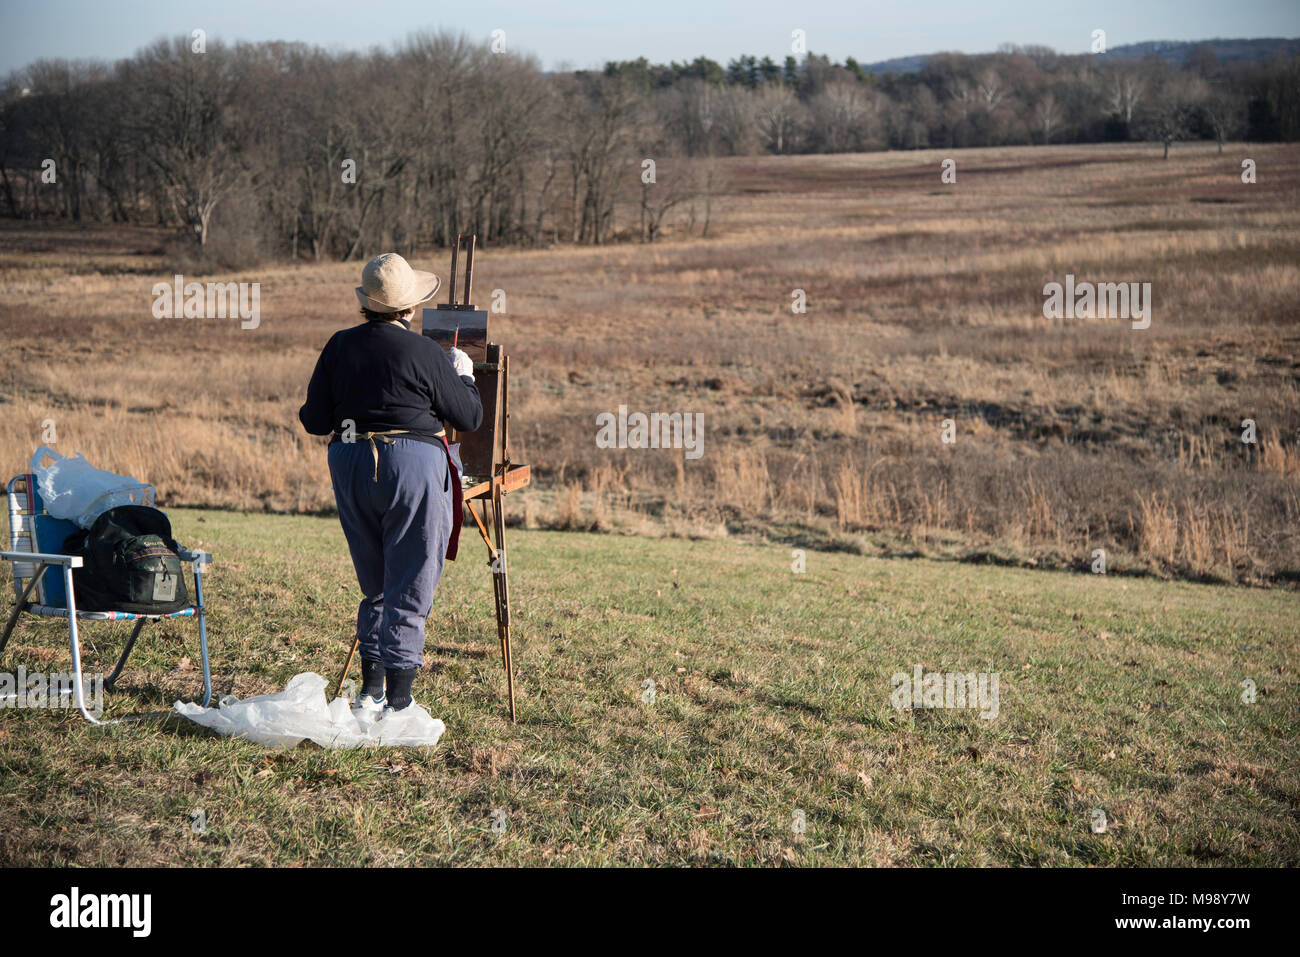 VALLEY FORGE, PENNSYLVANIA/USA - December 27, 2014 Artist painting the scenery at Valley Forge National Historical Park - Stock Image